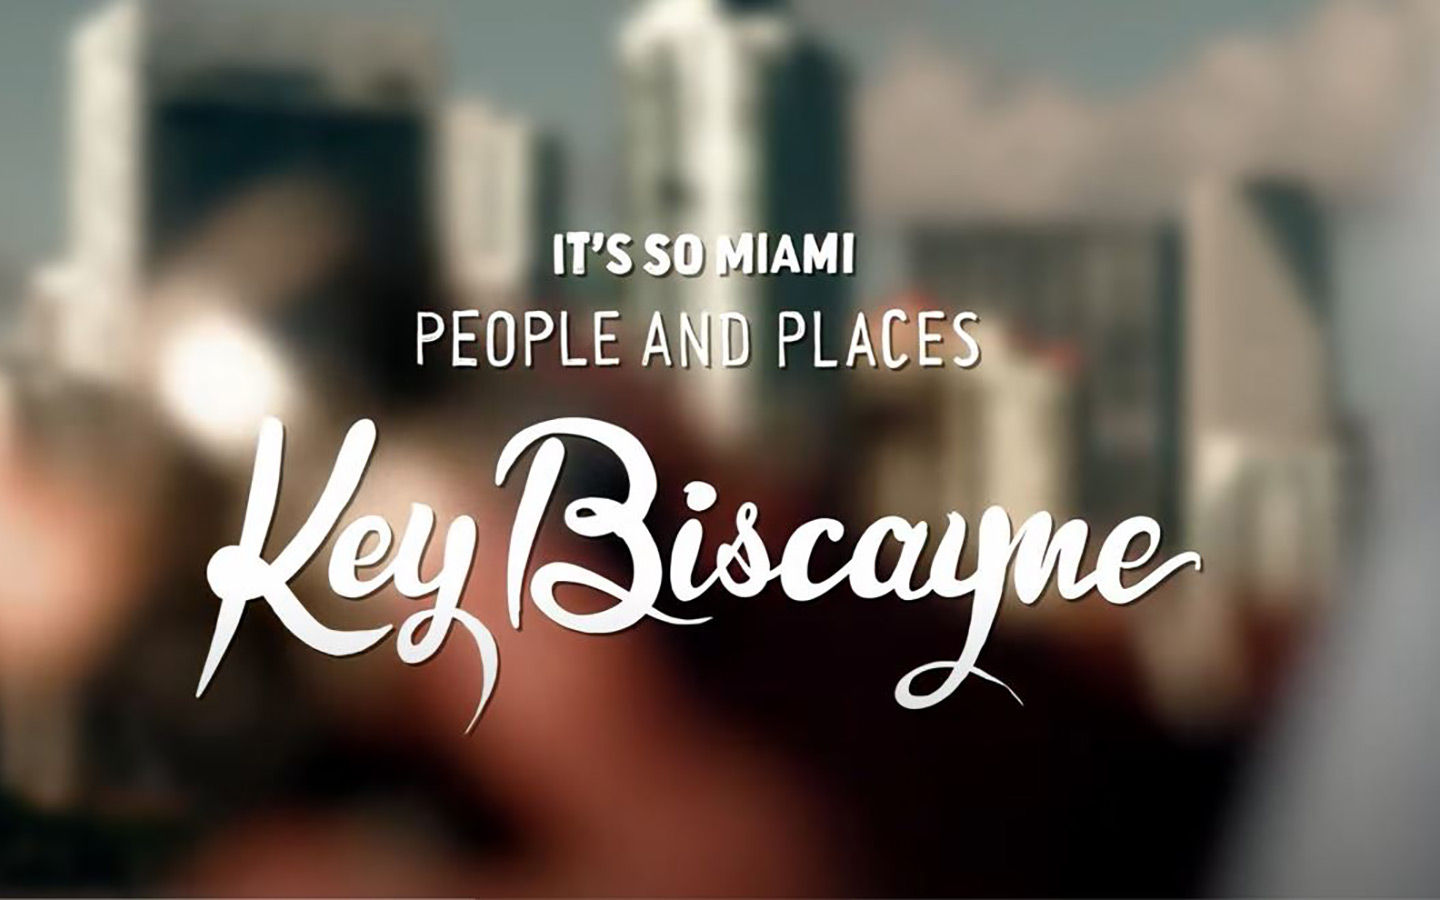 Es tan miami: Key Biscayne